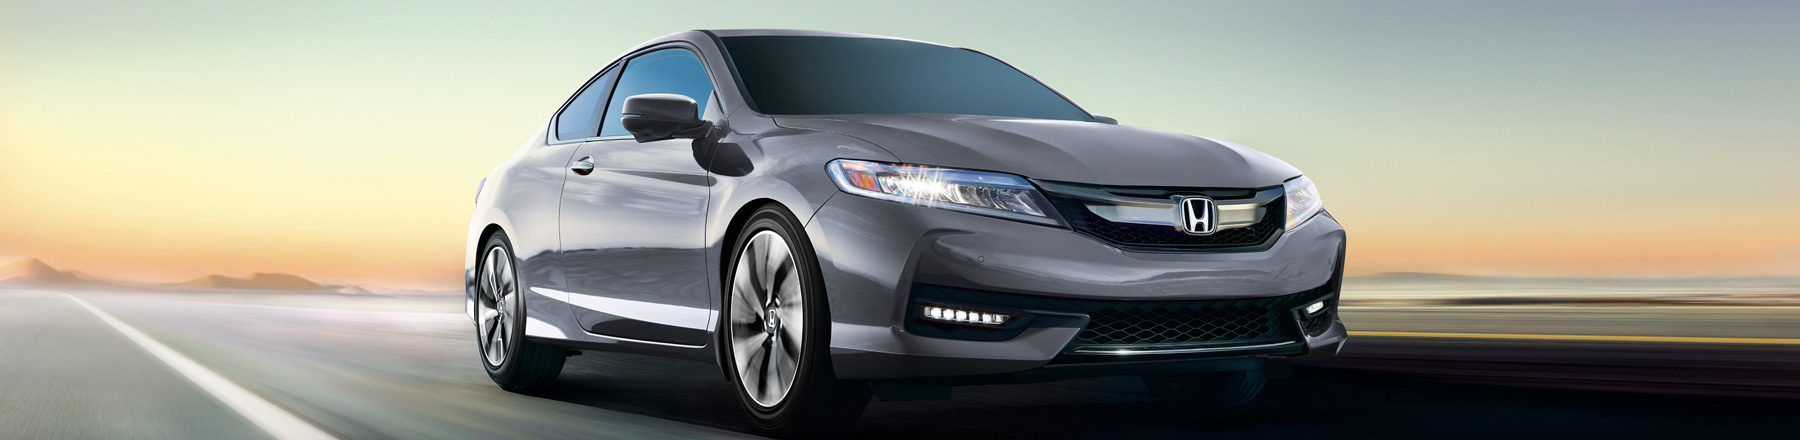 Used Honda Accord model in Airdrie, AB